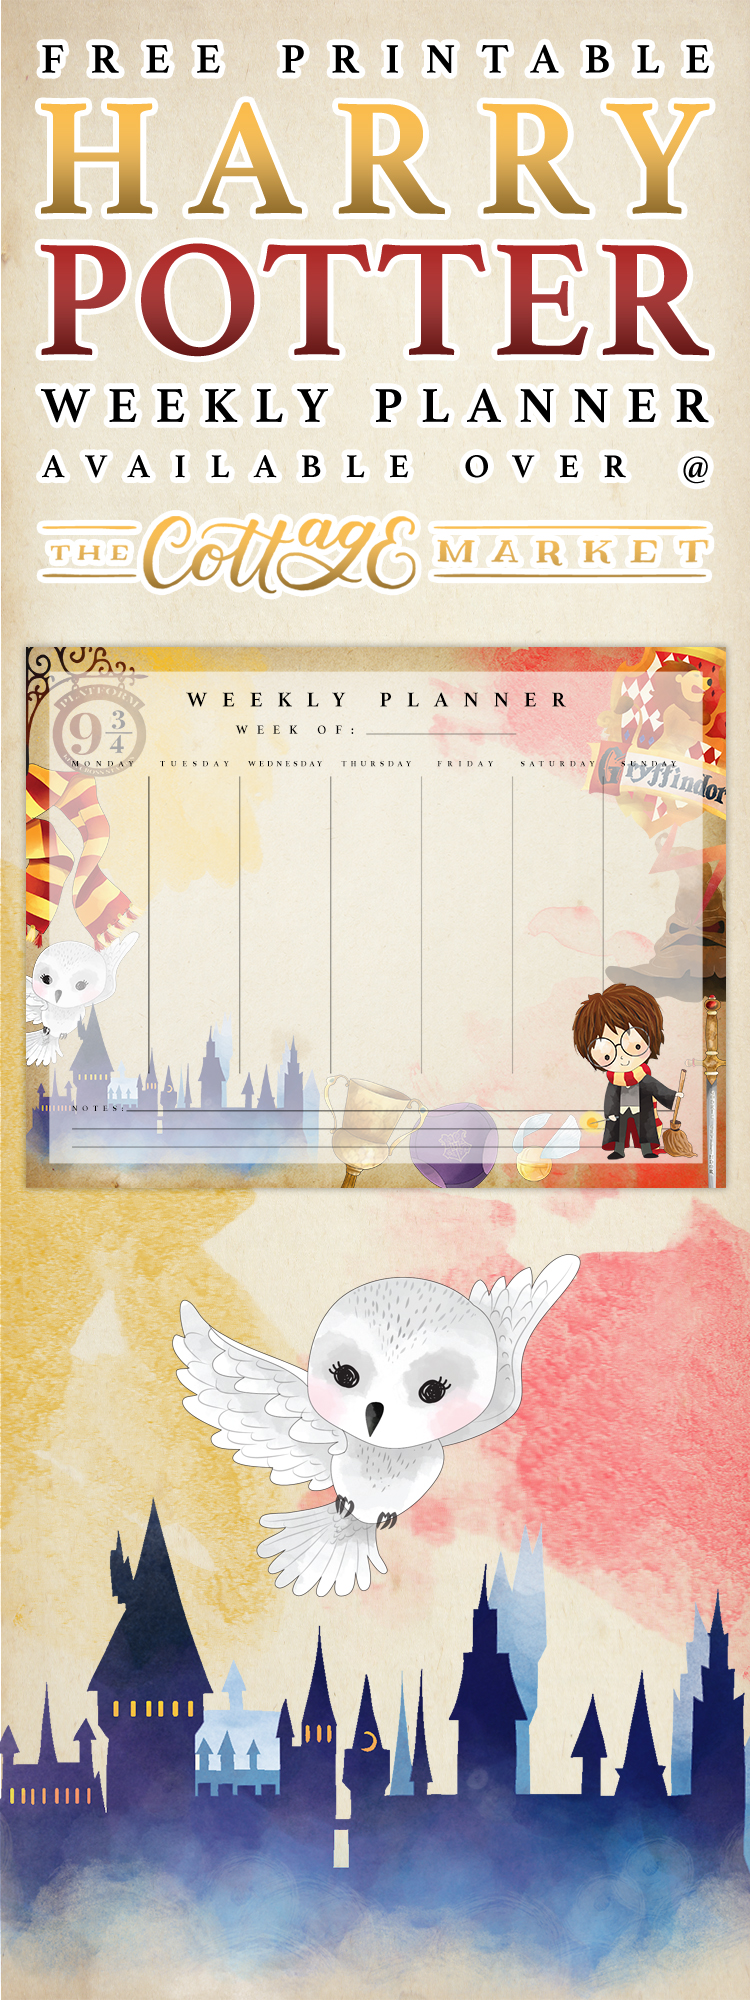 It's time to add a little bit of Magic in your life with this set of The Free Printable Harry Potter Collection Part 2! You are going to love it!